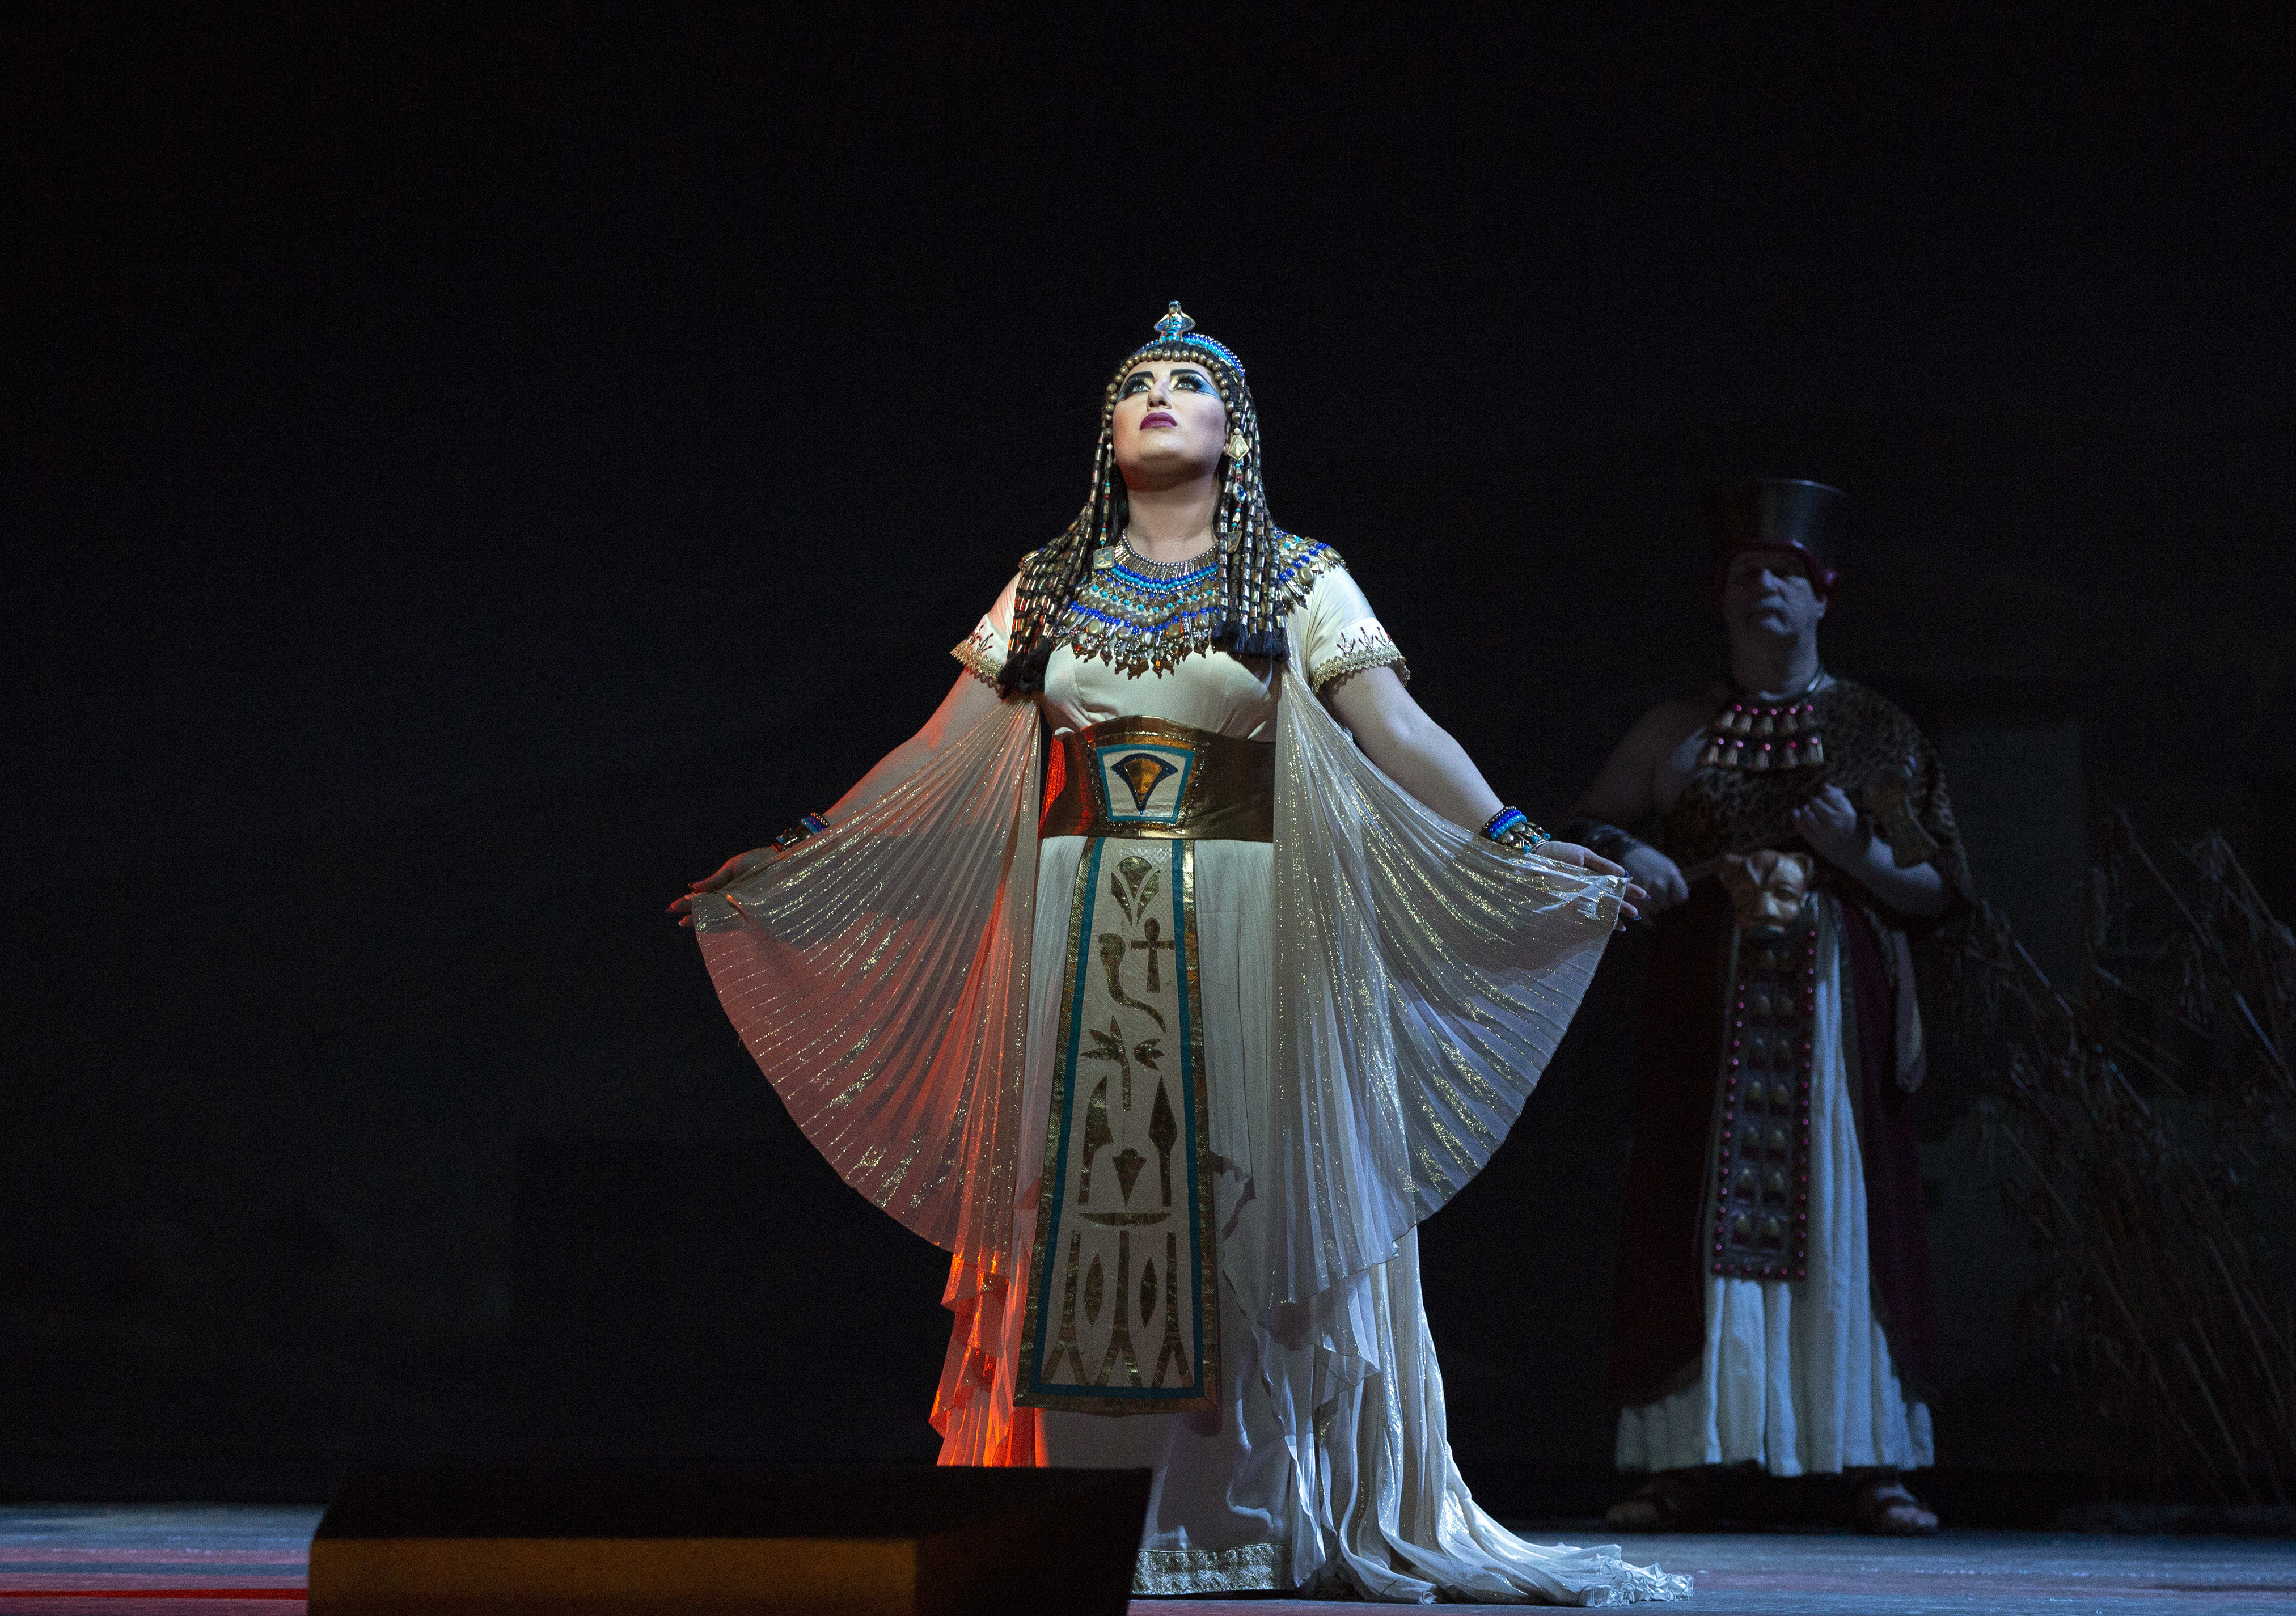 Aida on stage with Egyptian-style costume